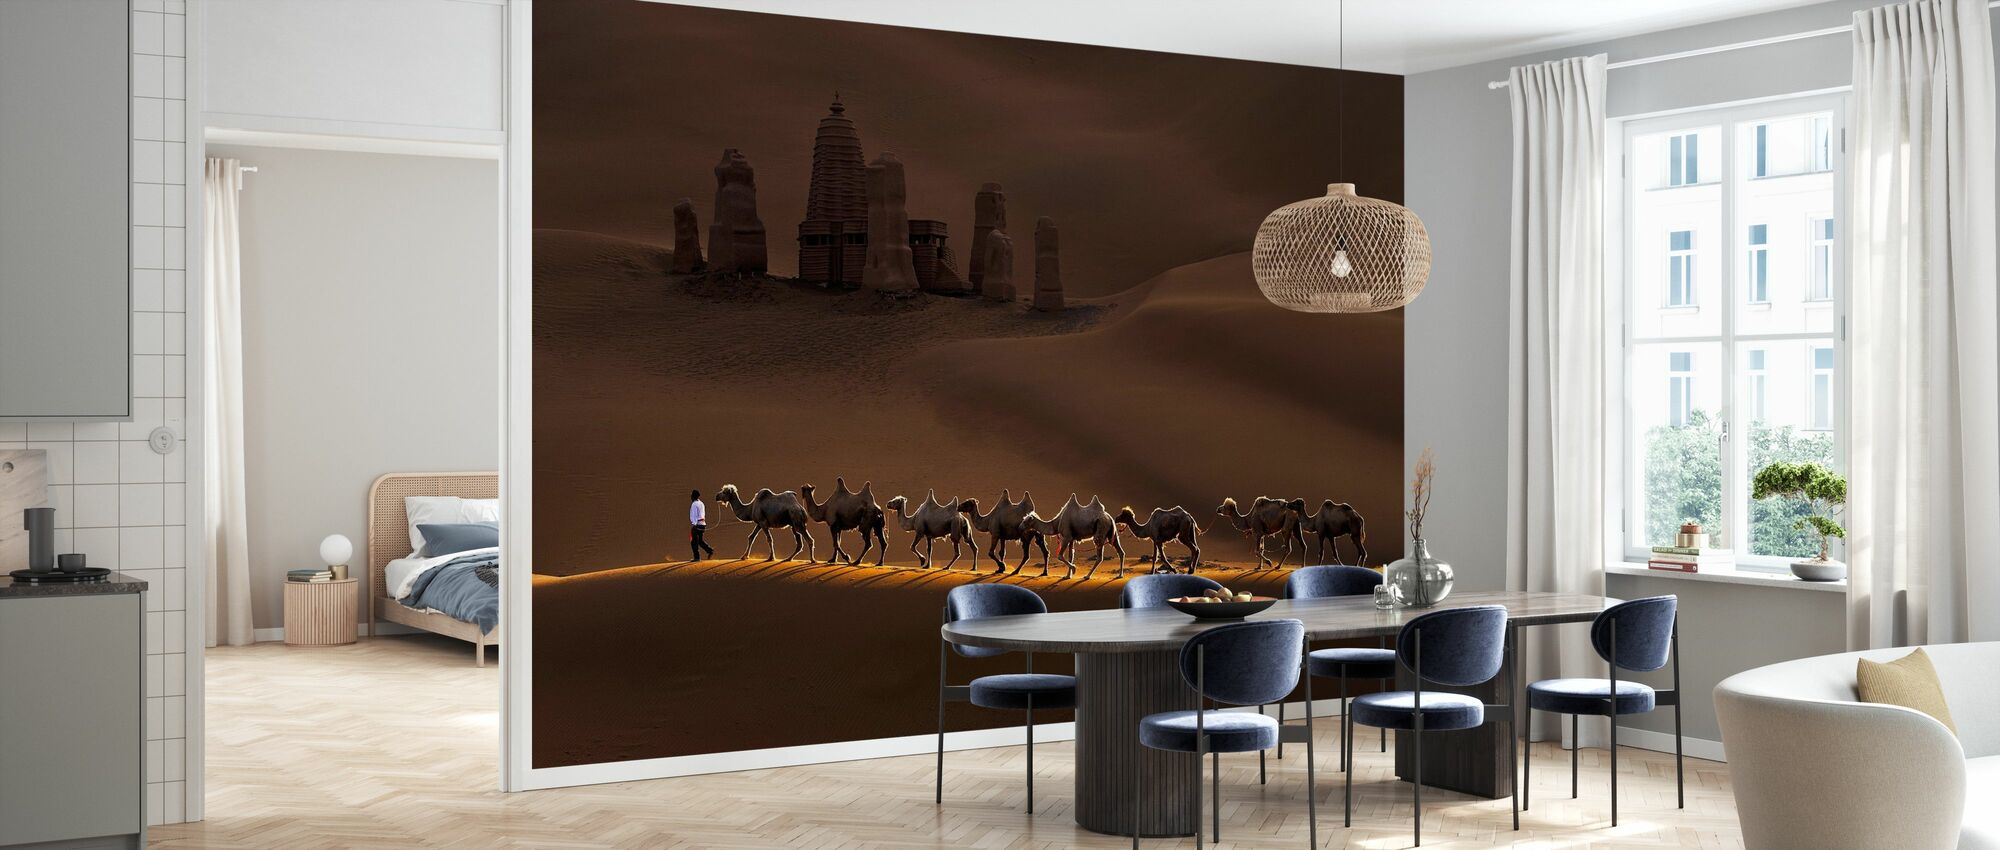 Castle and Camels - Wallpaper - Kitchen